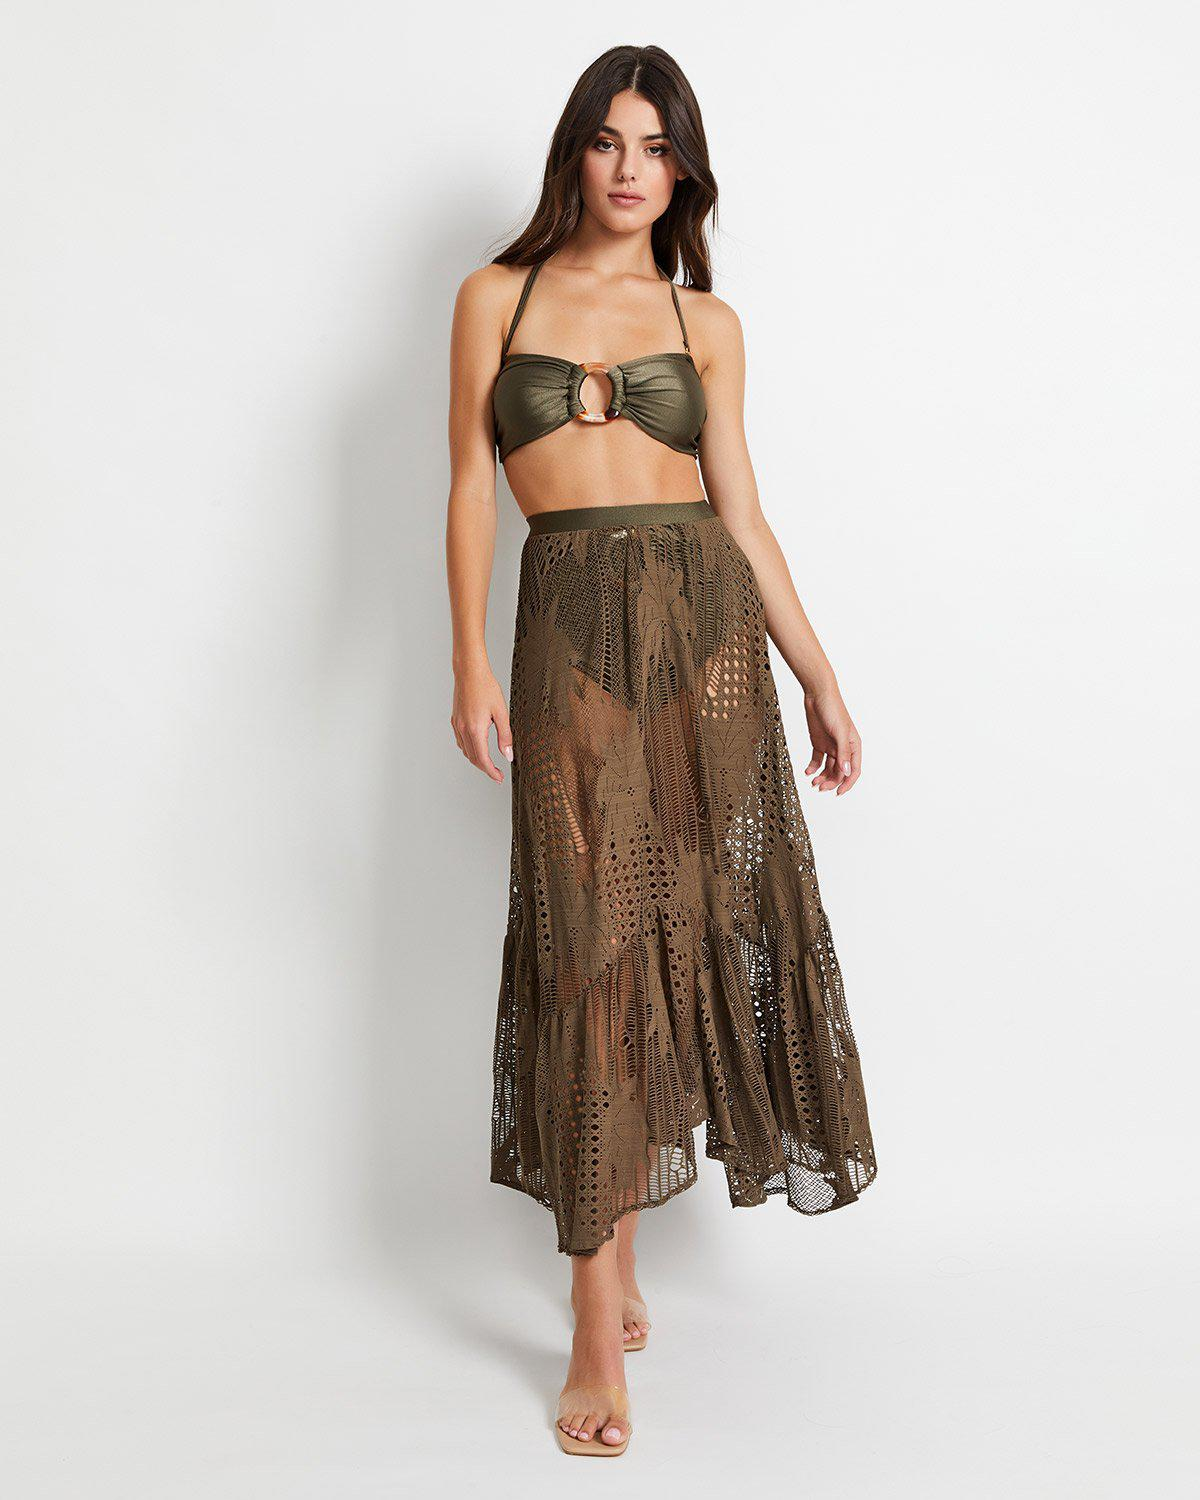 Palm Lace Beach Skirt (ONLINE EXCLUSIVE)